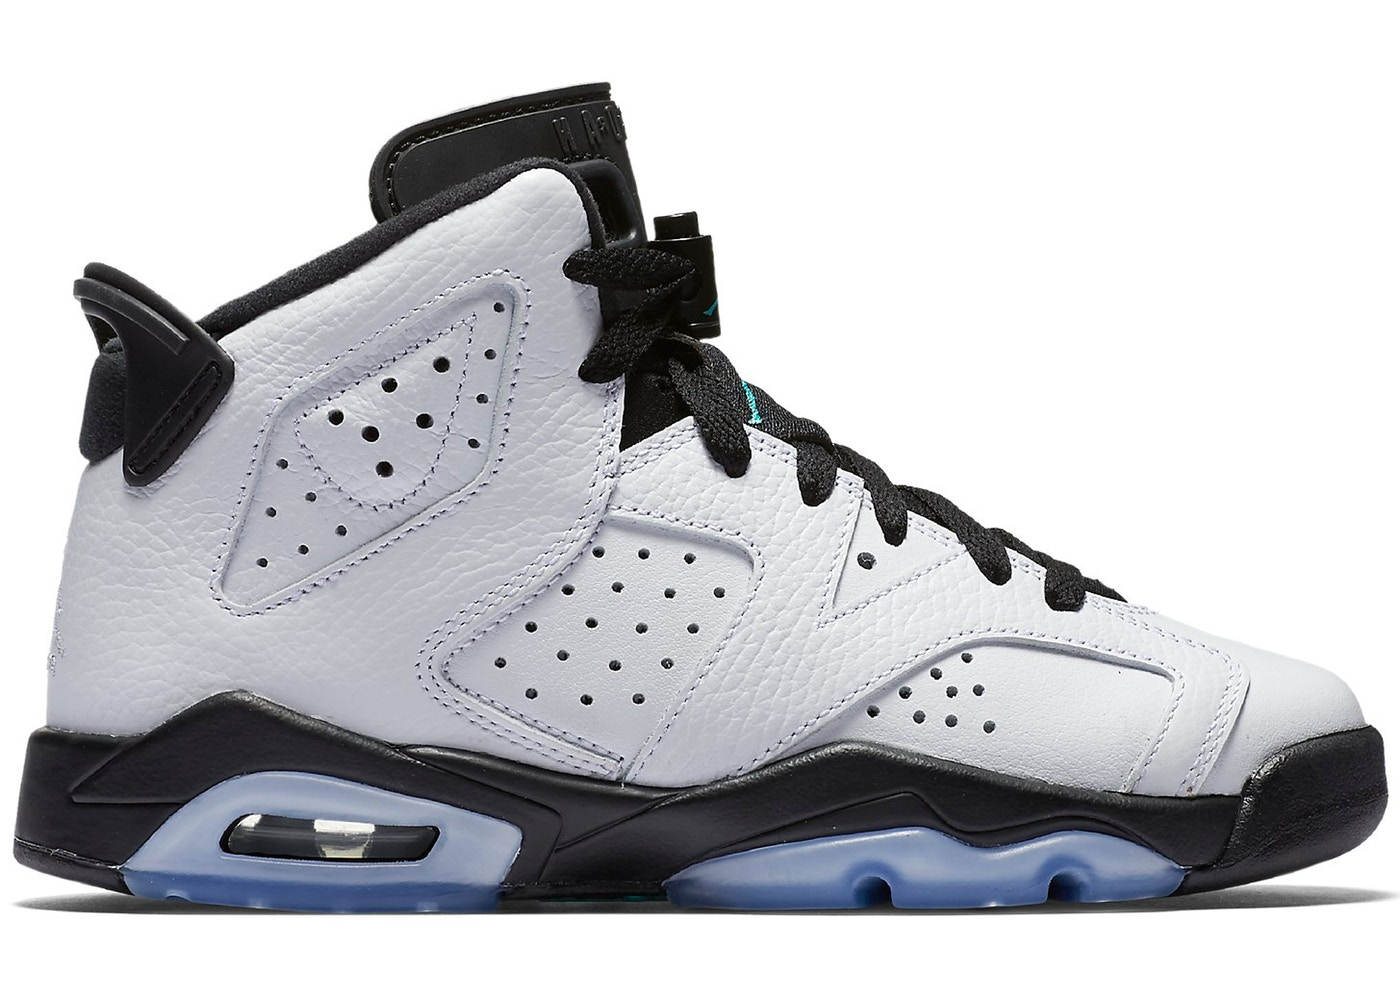 cheap for discount 30e8c 5d3e2 Jordan 6 Retro White Jade Black (GS) - 384665-122